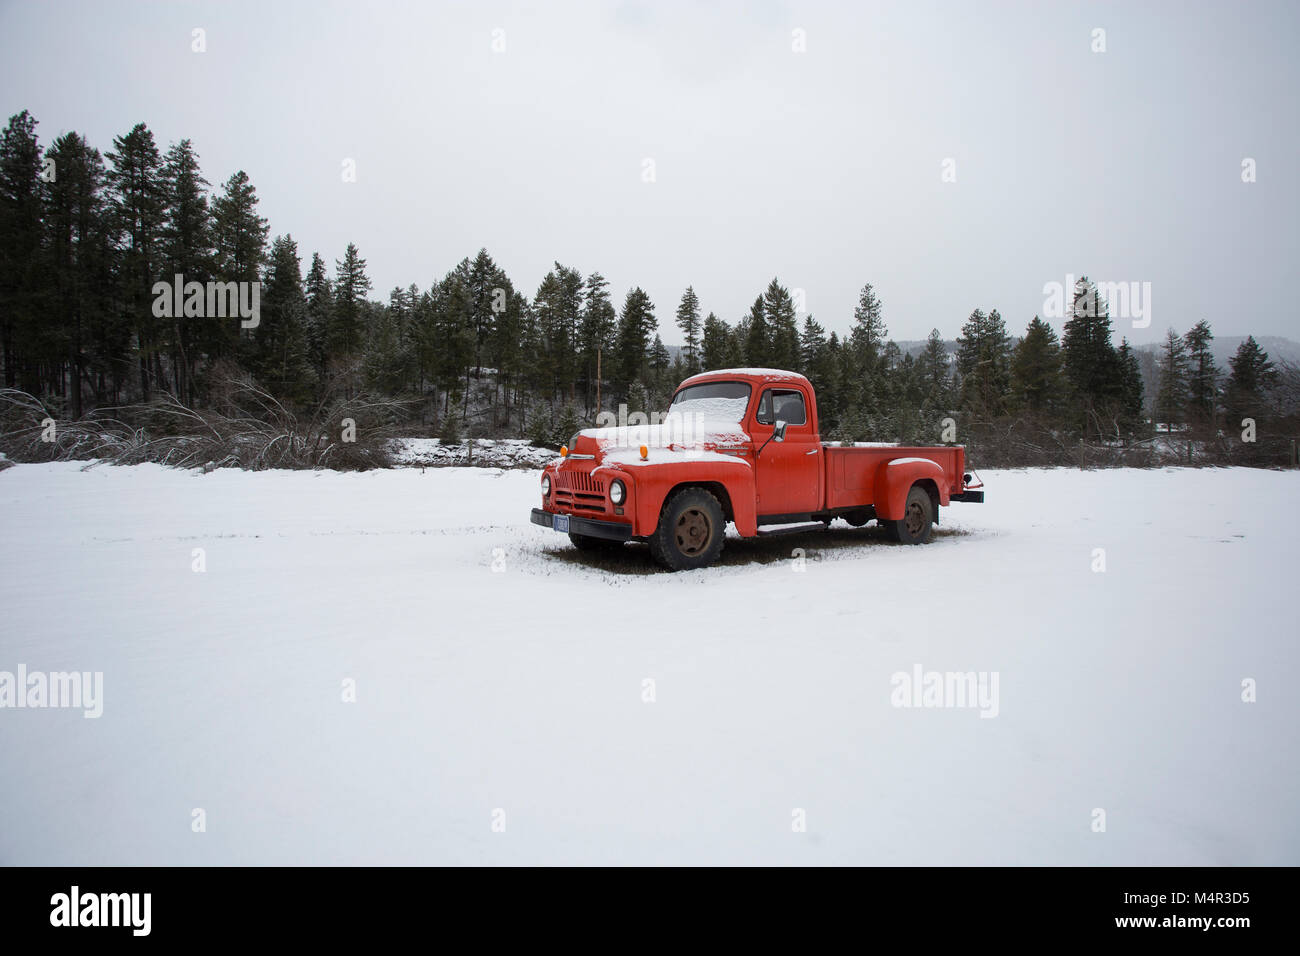 A snow covered 1952 International L130 pickup truck, in an